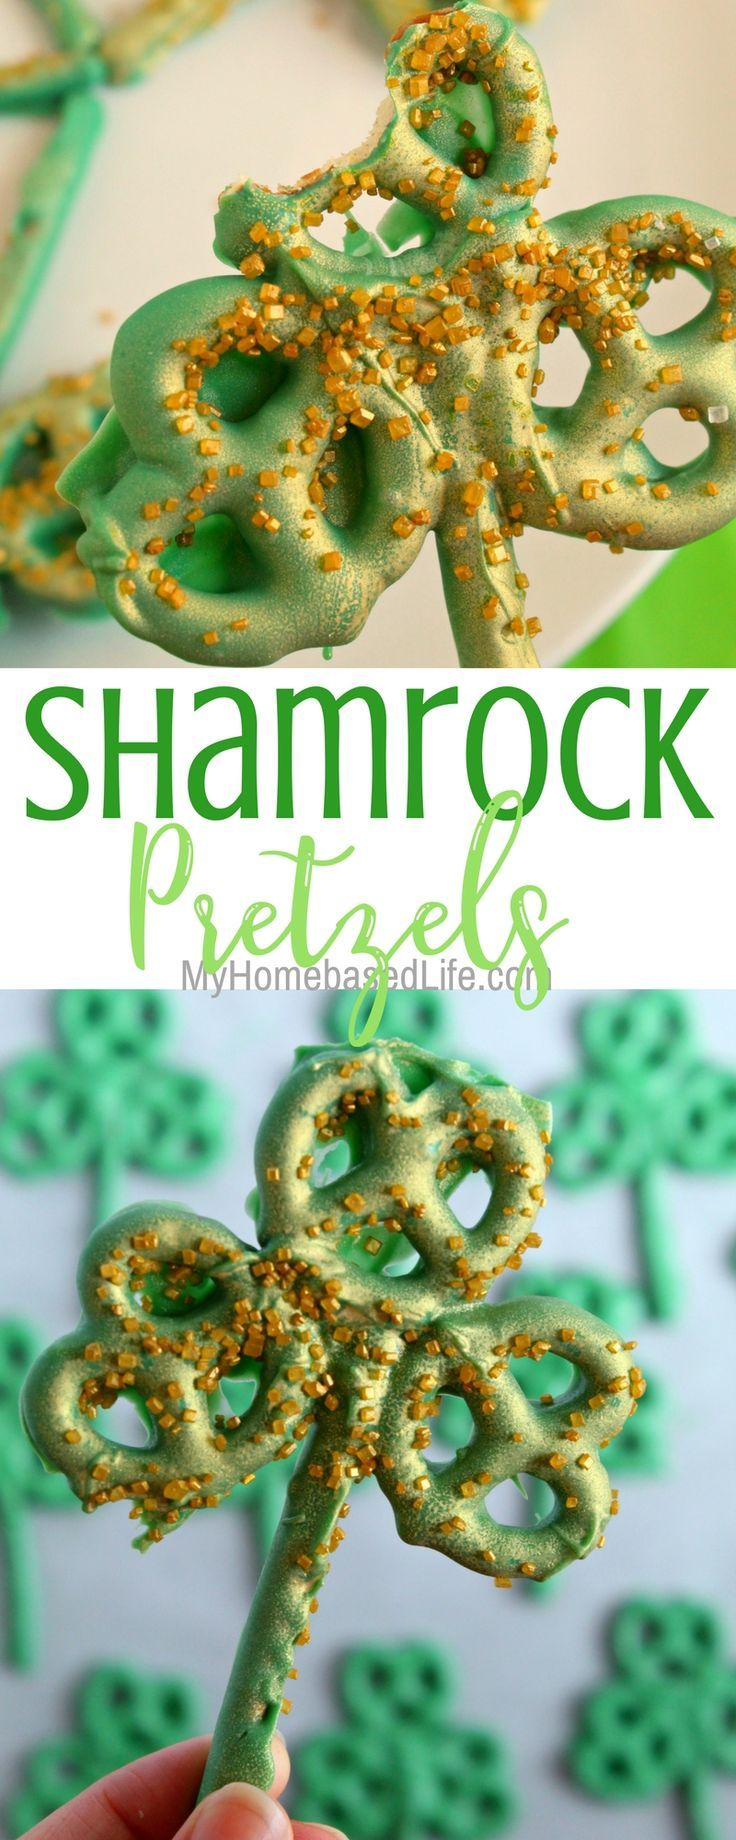 Shamrock pretzel treats a simple and fun snack for the kids this recipe forkids stpatricksday shamrock greenfood st patricks day snacks for kids easy snack forumfinder Images